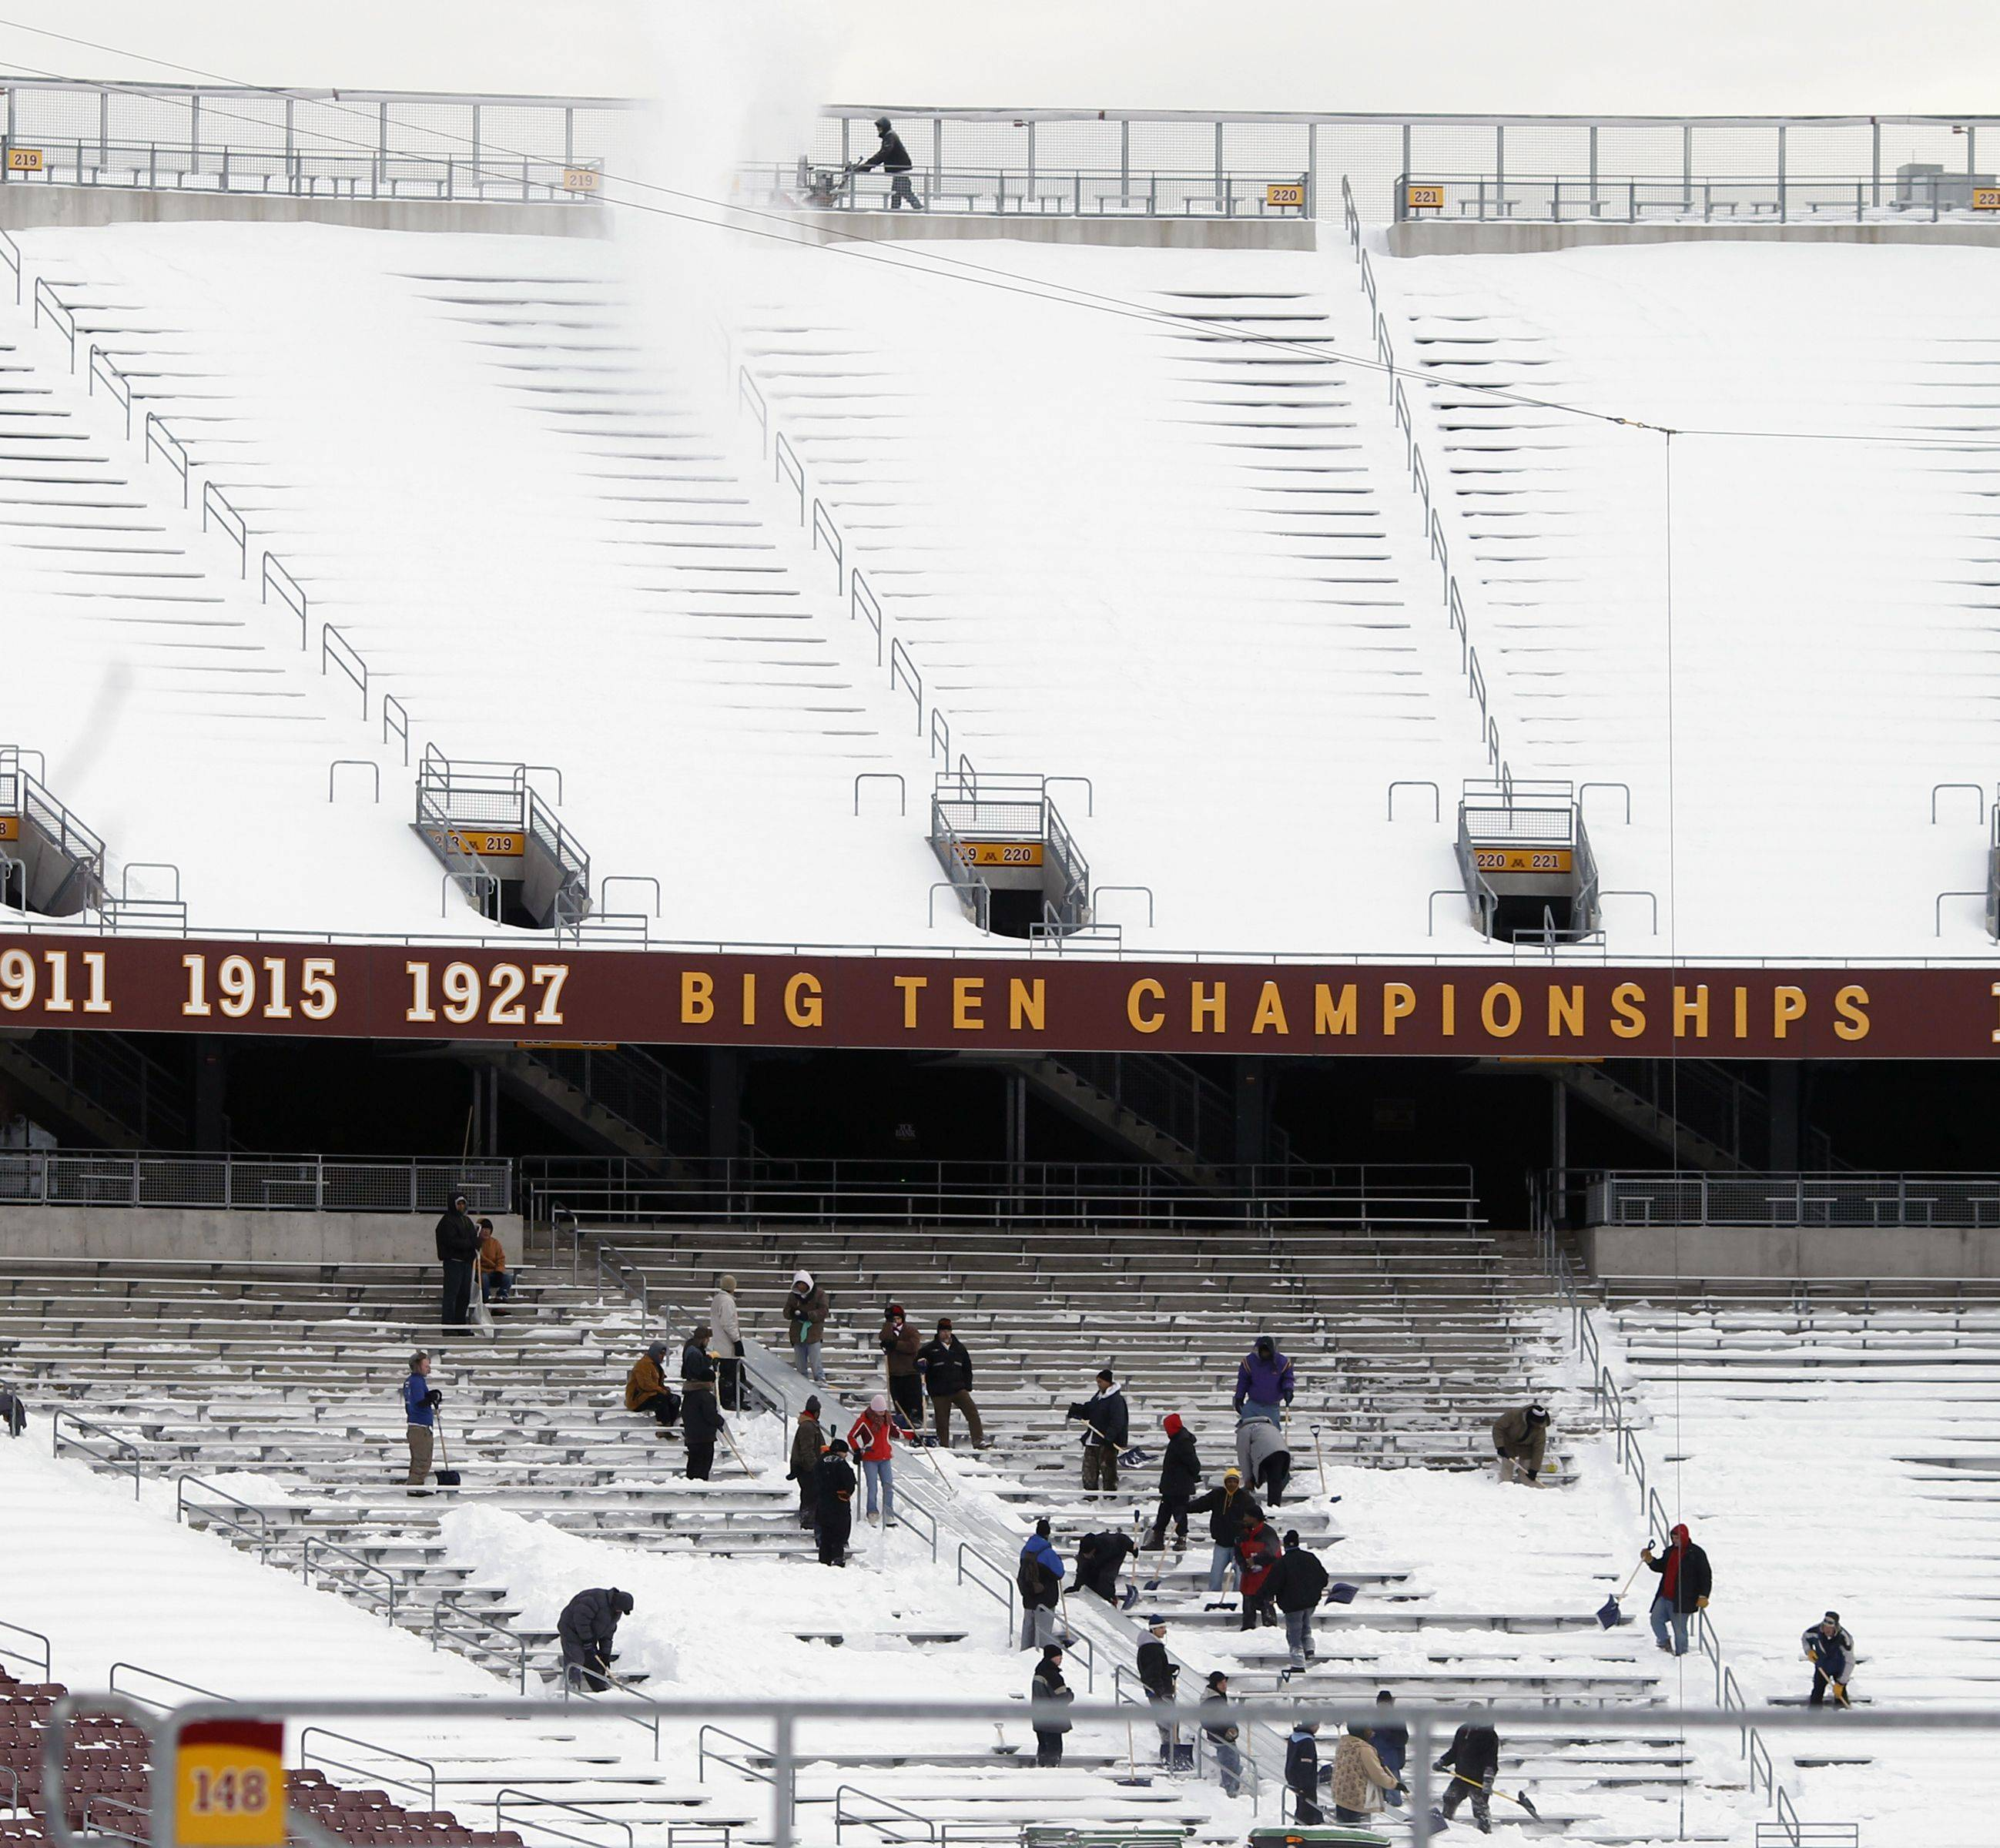 Work crews remove snow from the stands at TCF Stadium, home of the University of Minnesota football team on Wednesday in Minneapolis. The Minnesota Vikings decided to hold Monday night's NFL football game against the Bears at TCF Bank Stadium, but players are concerned the field will be frozen.